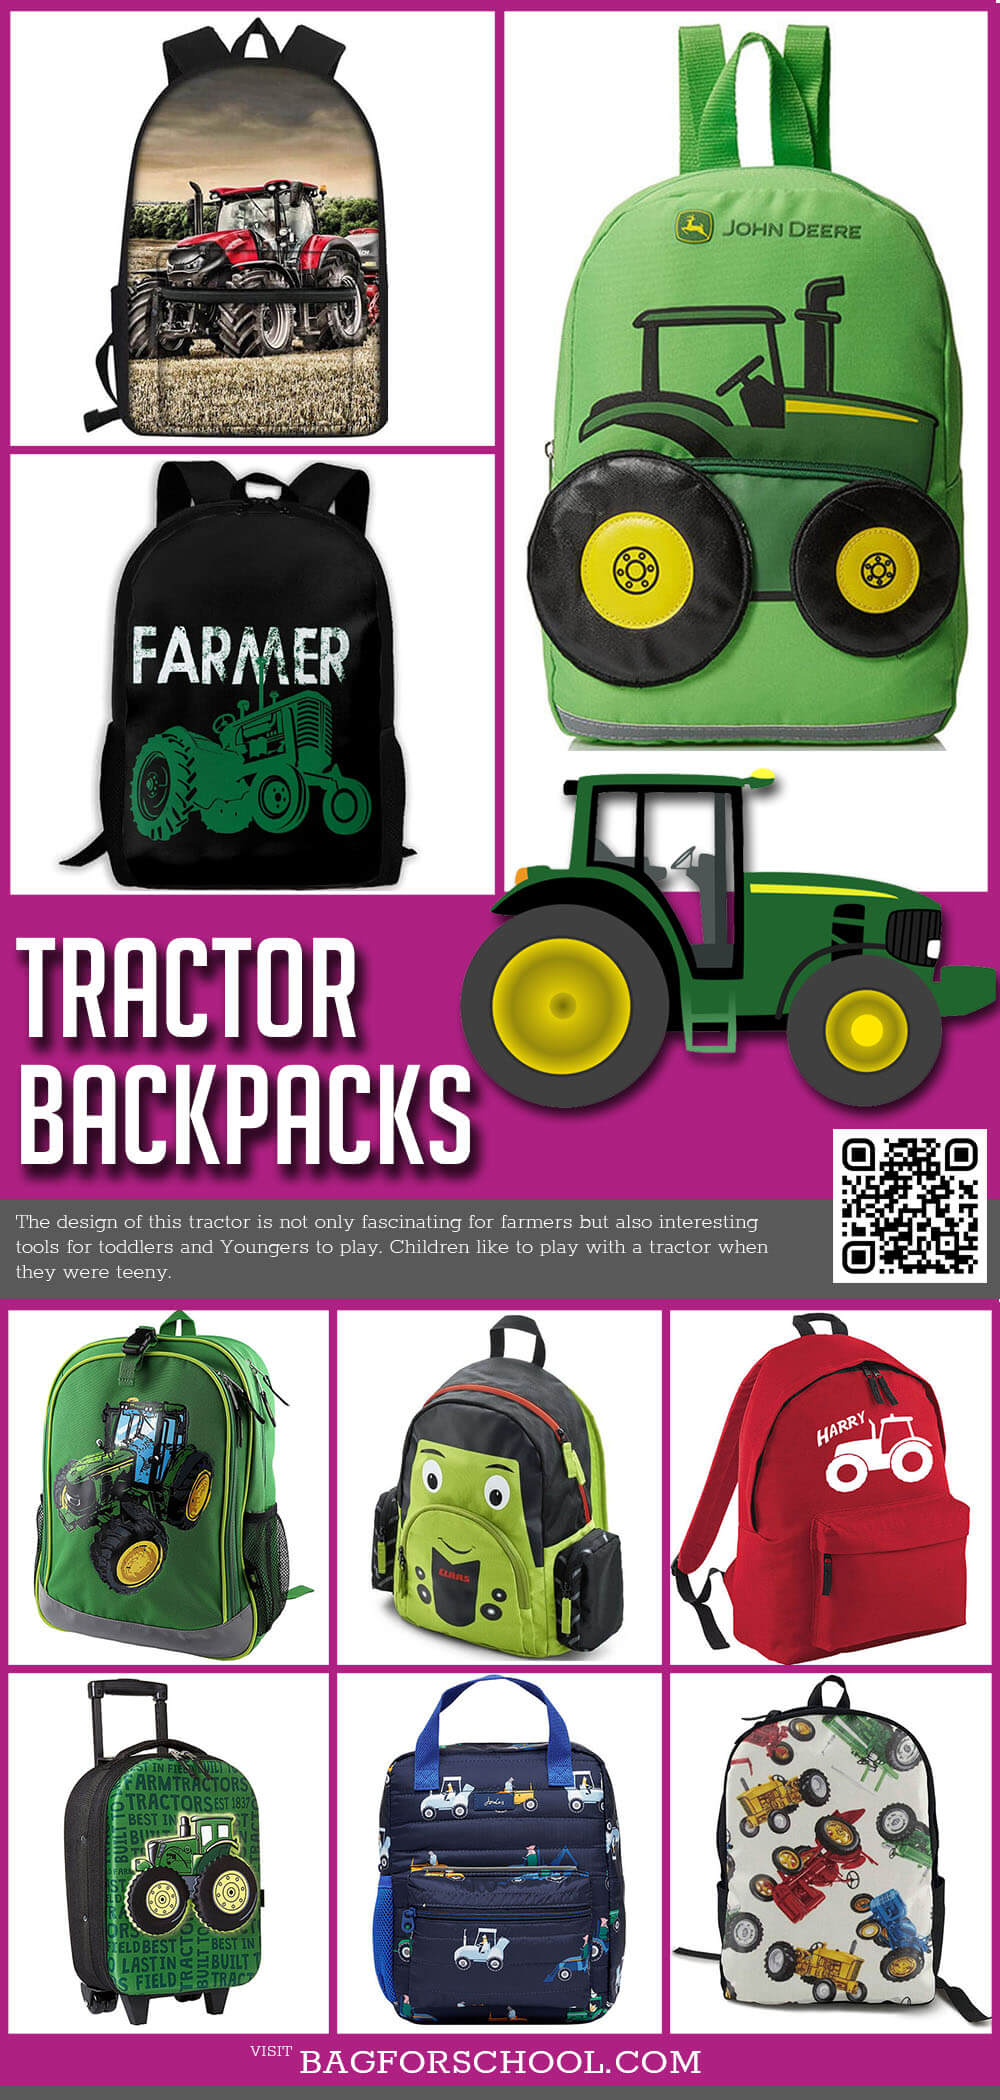 Tractor Backpacks